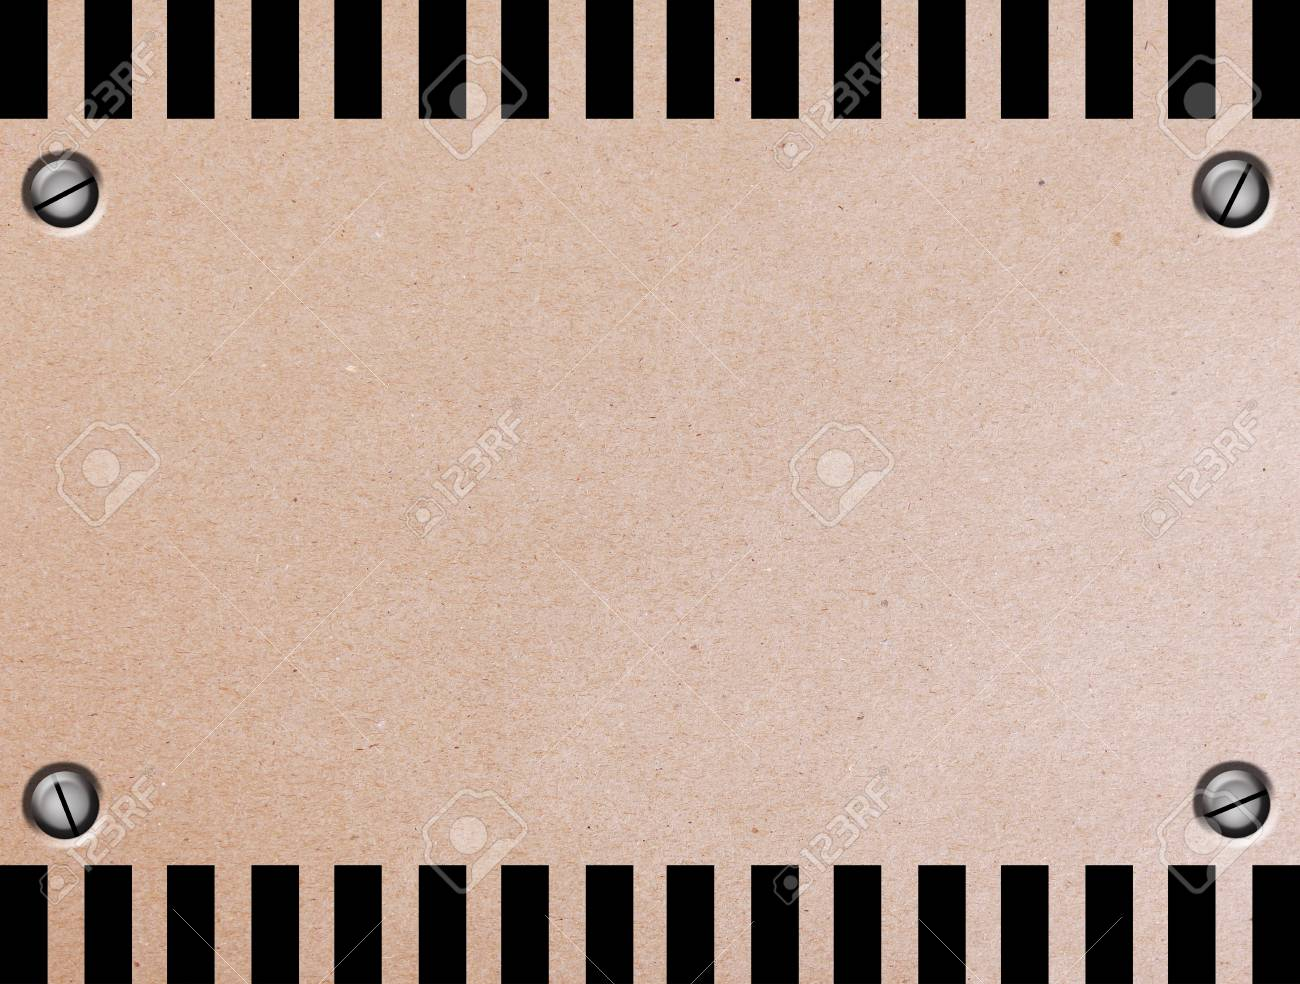 Brown and black sheet in sign of caution.Illustration Stock Illustration - 9696814